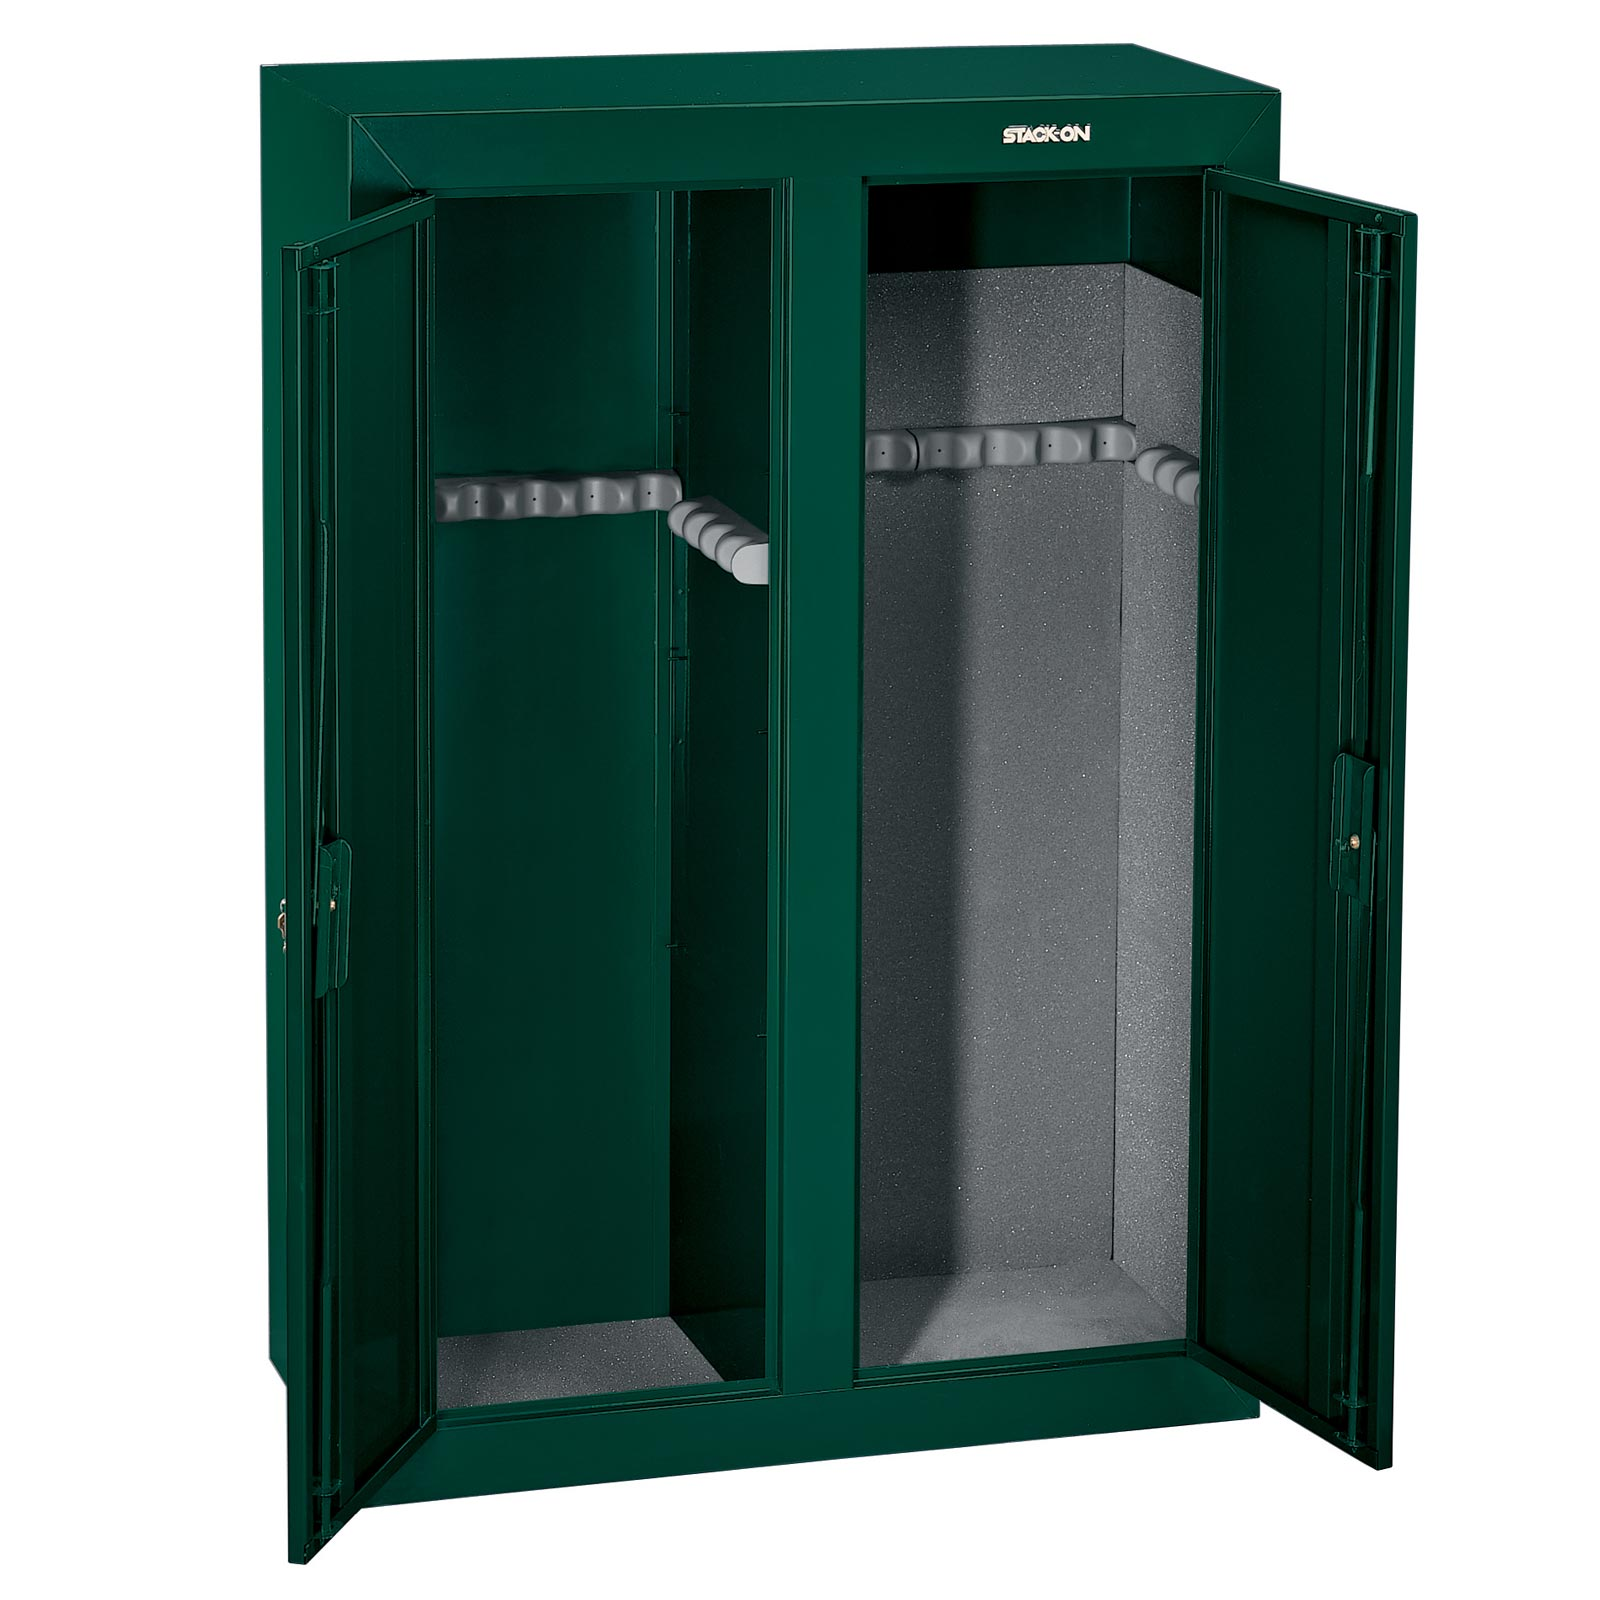 Stack On Gcdg 9216 Gun Cabinet Convertible Double Door Security